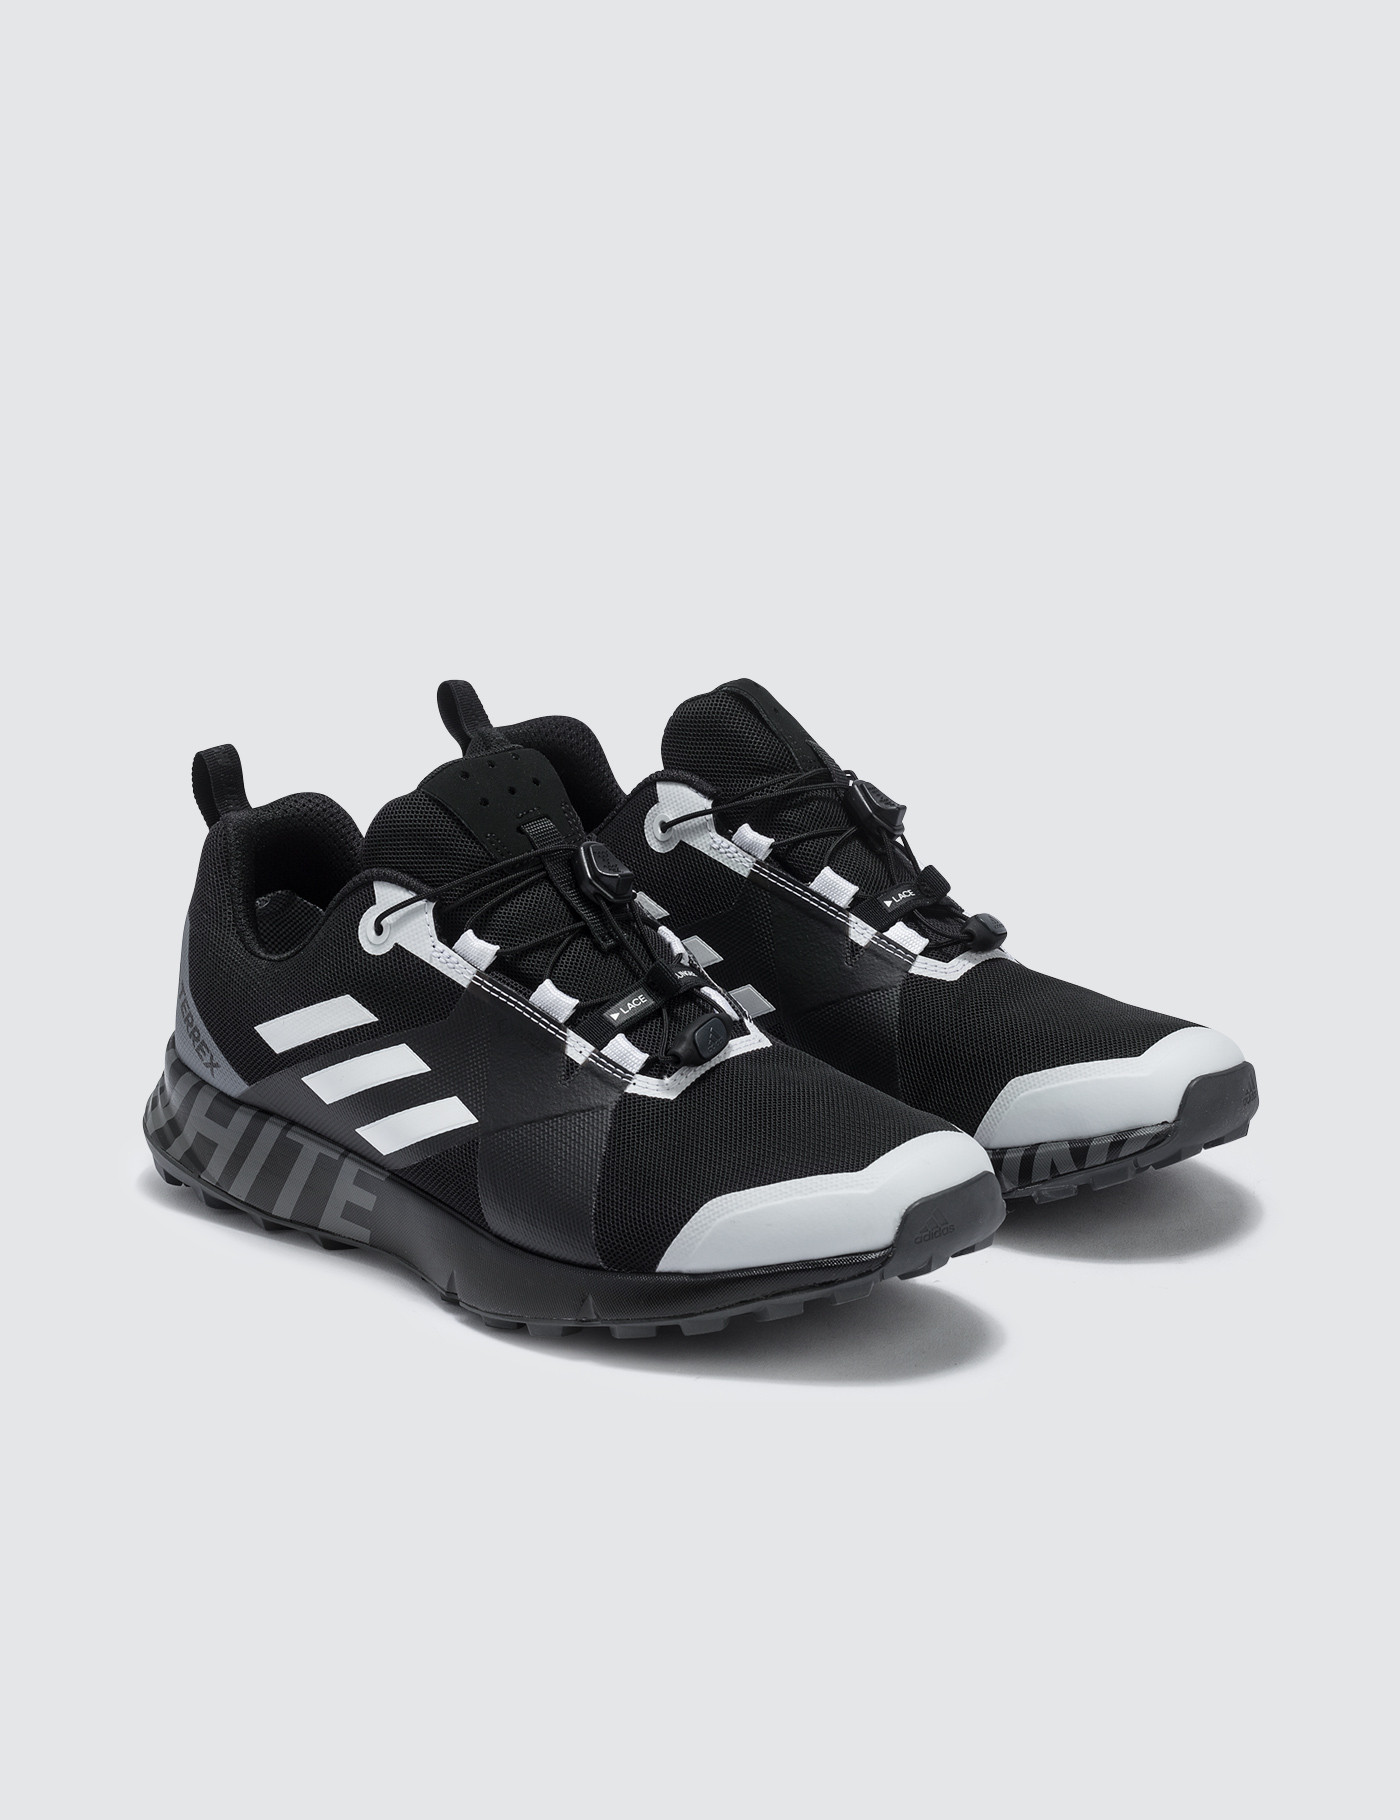 Adidas Originals White Mountaineering x Adidas Terrex Two GTX